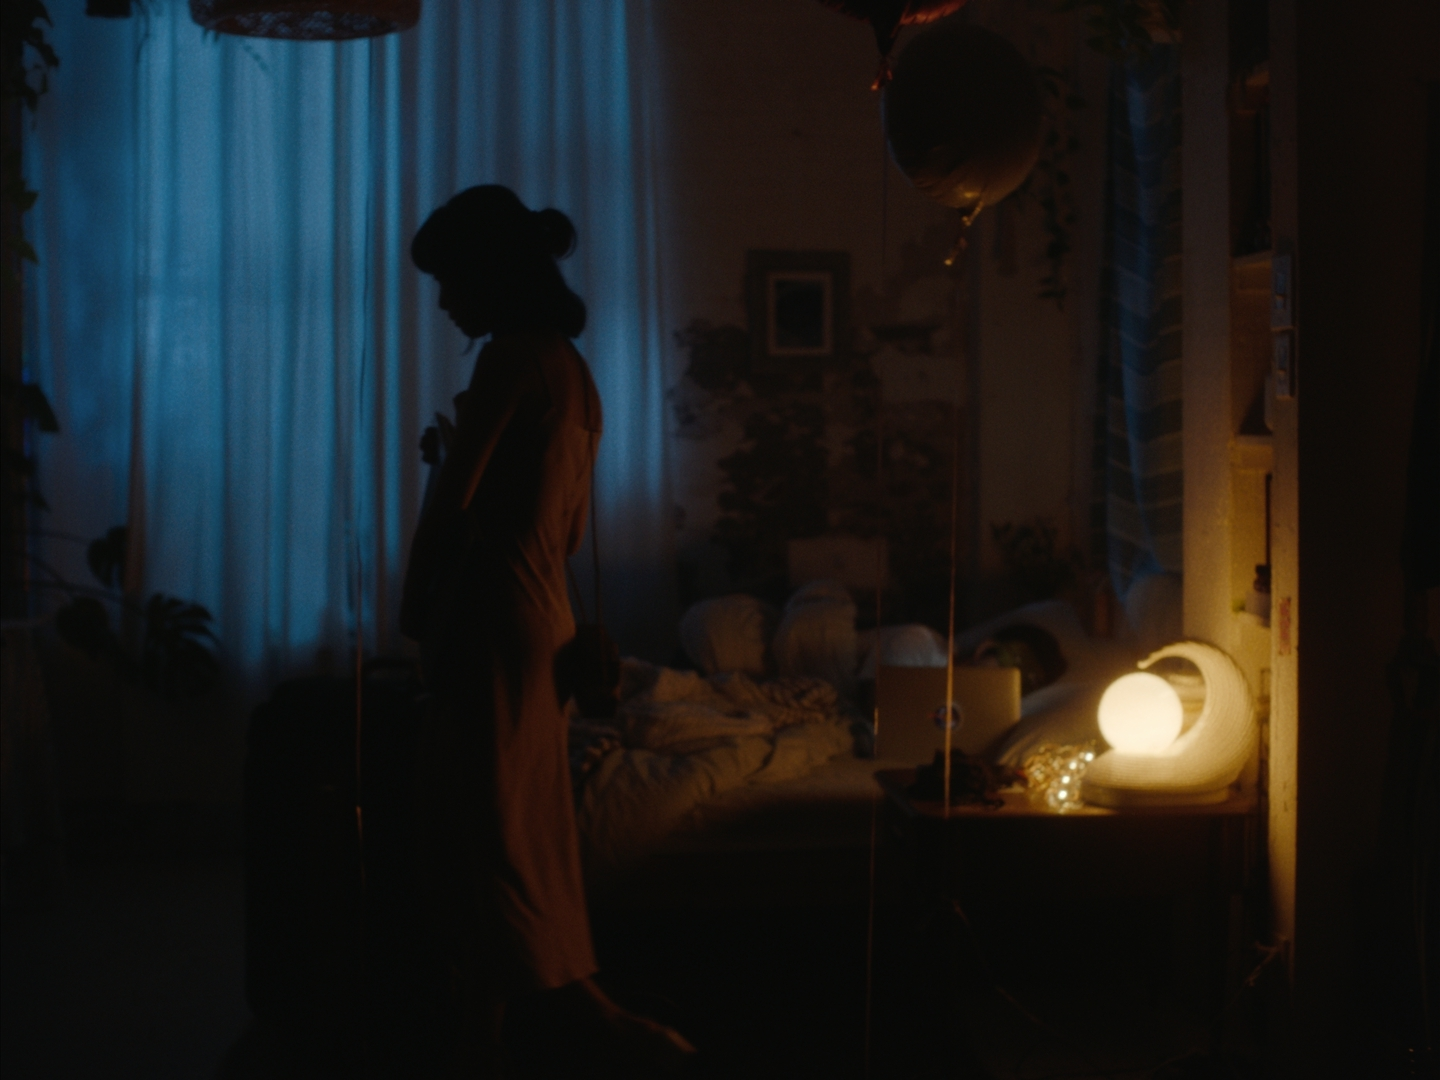 Still from   Untitled Love Story   ,  a short film written and directed by Yifei He.